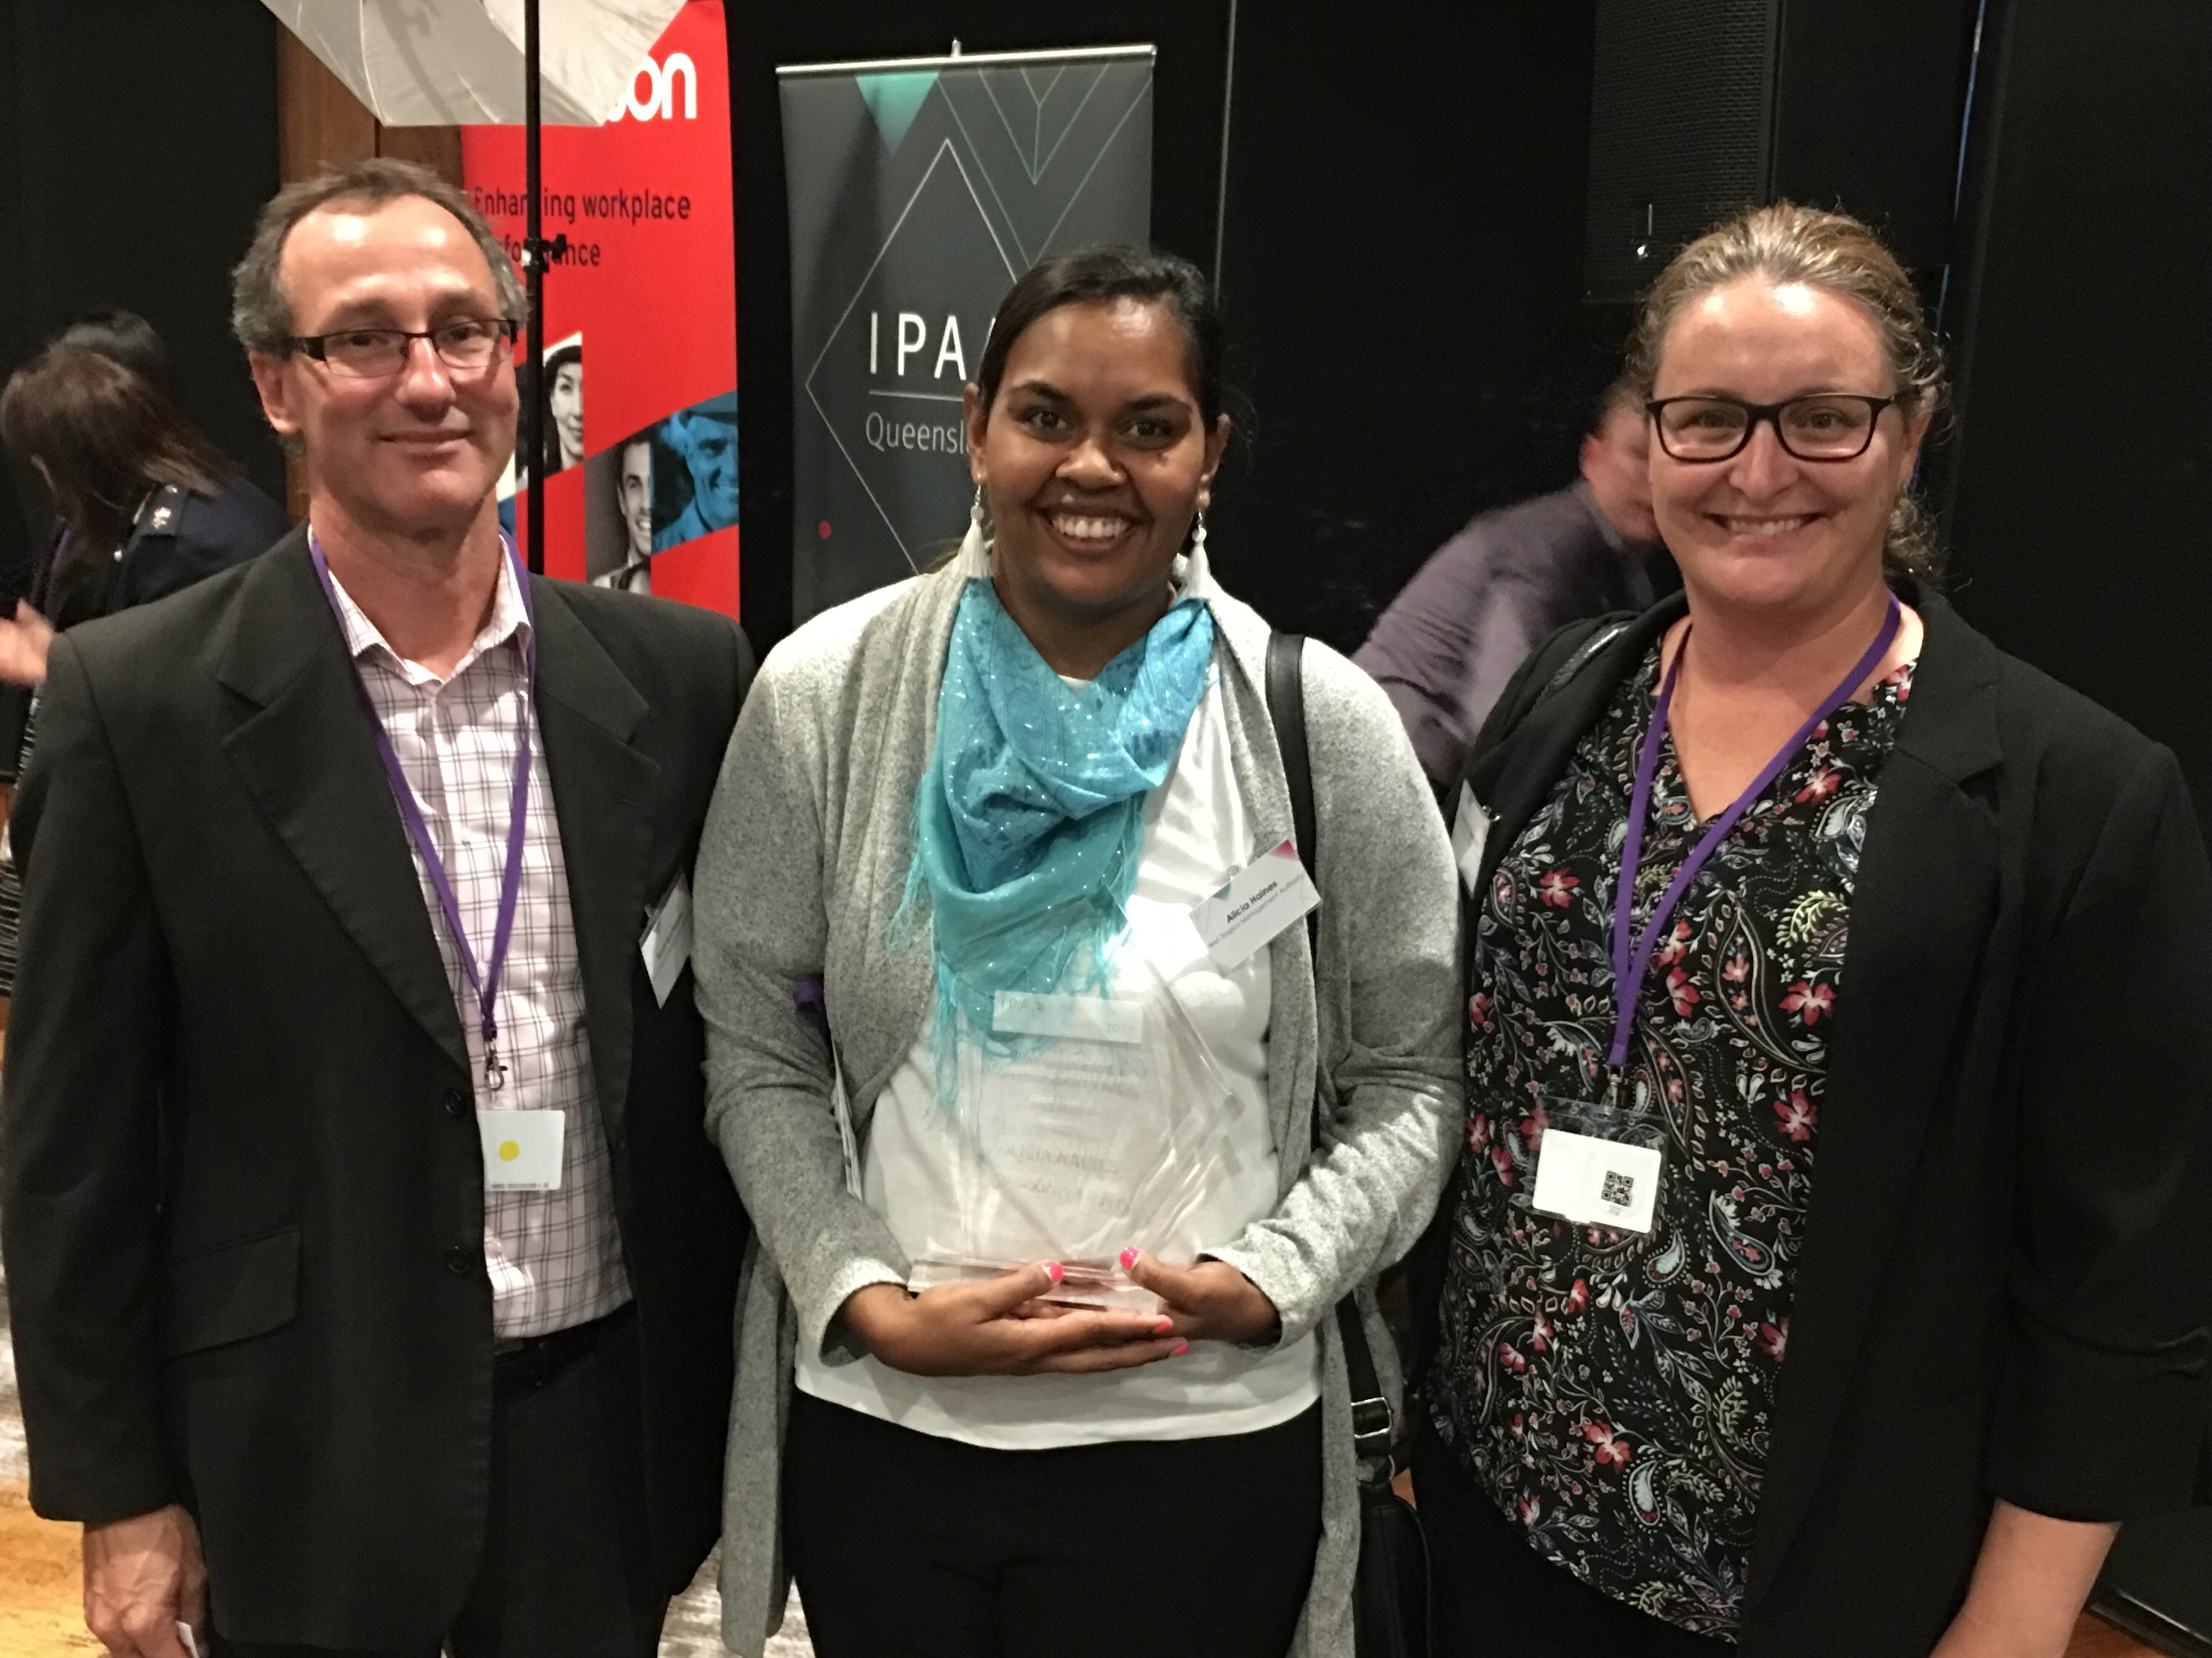 Authority staffer collects leadership prize